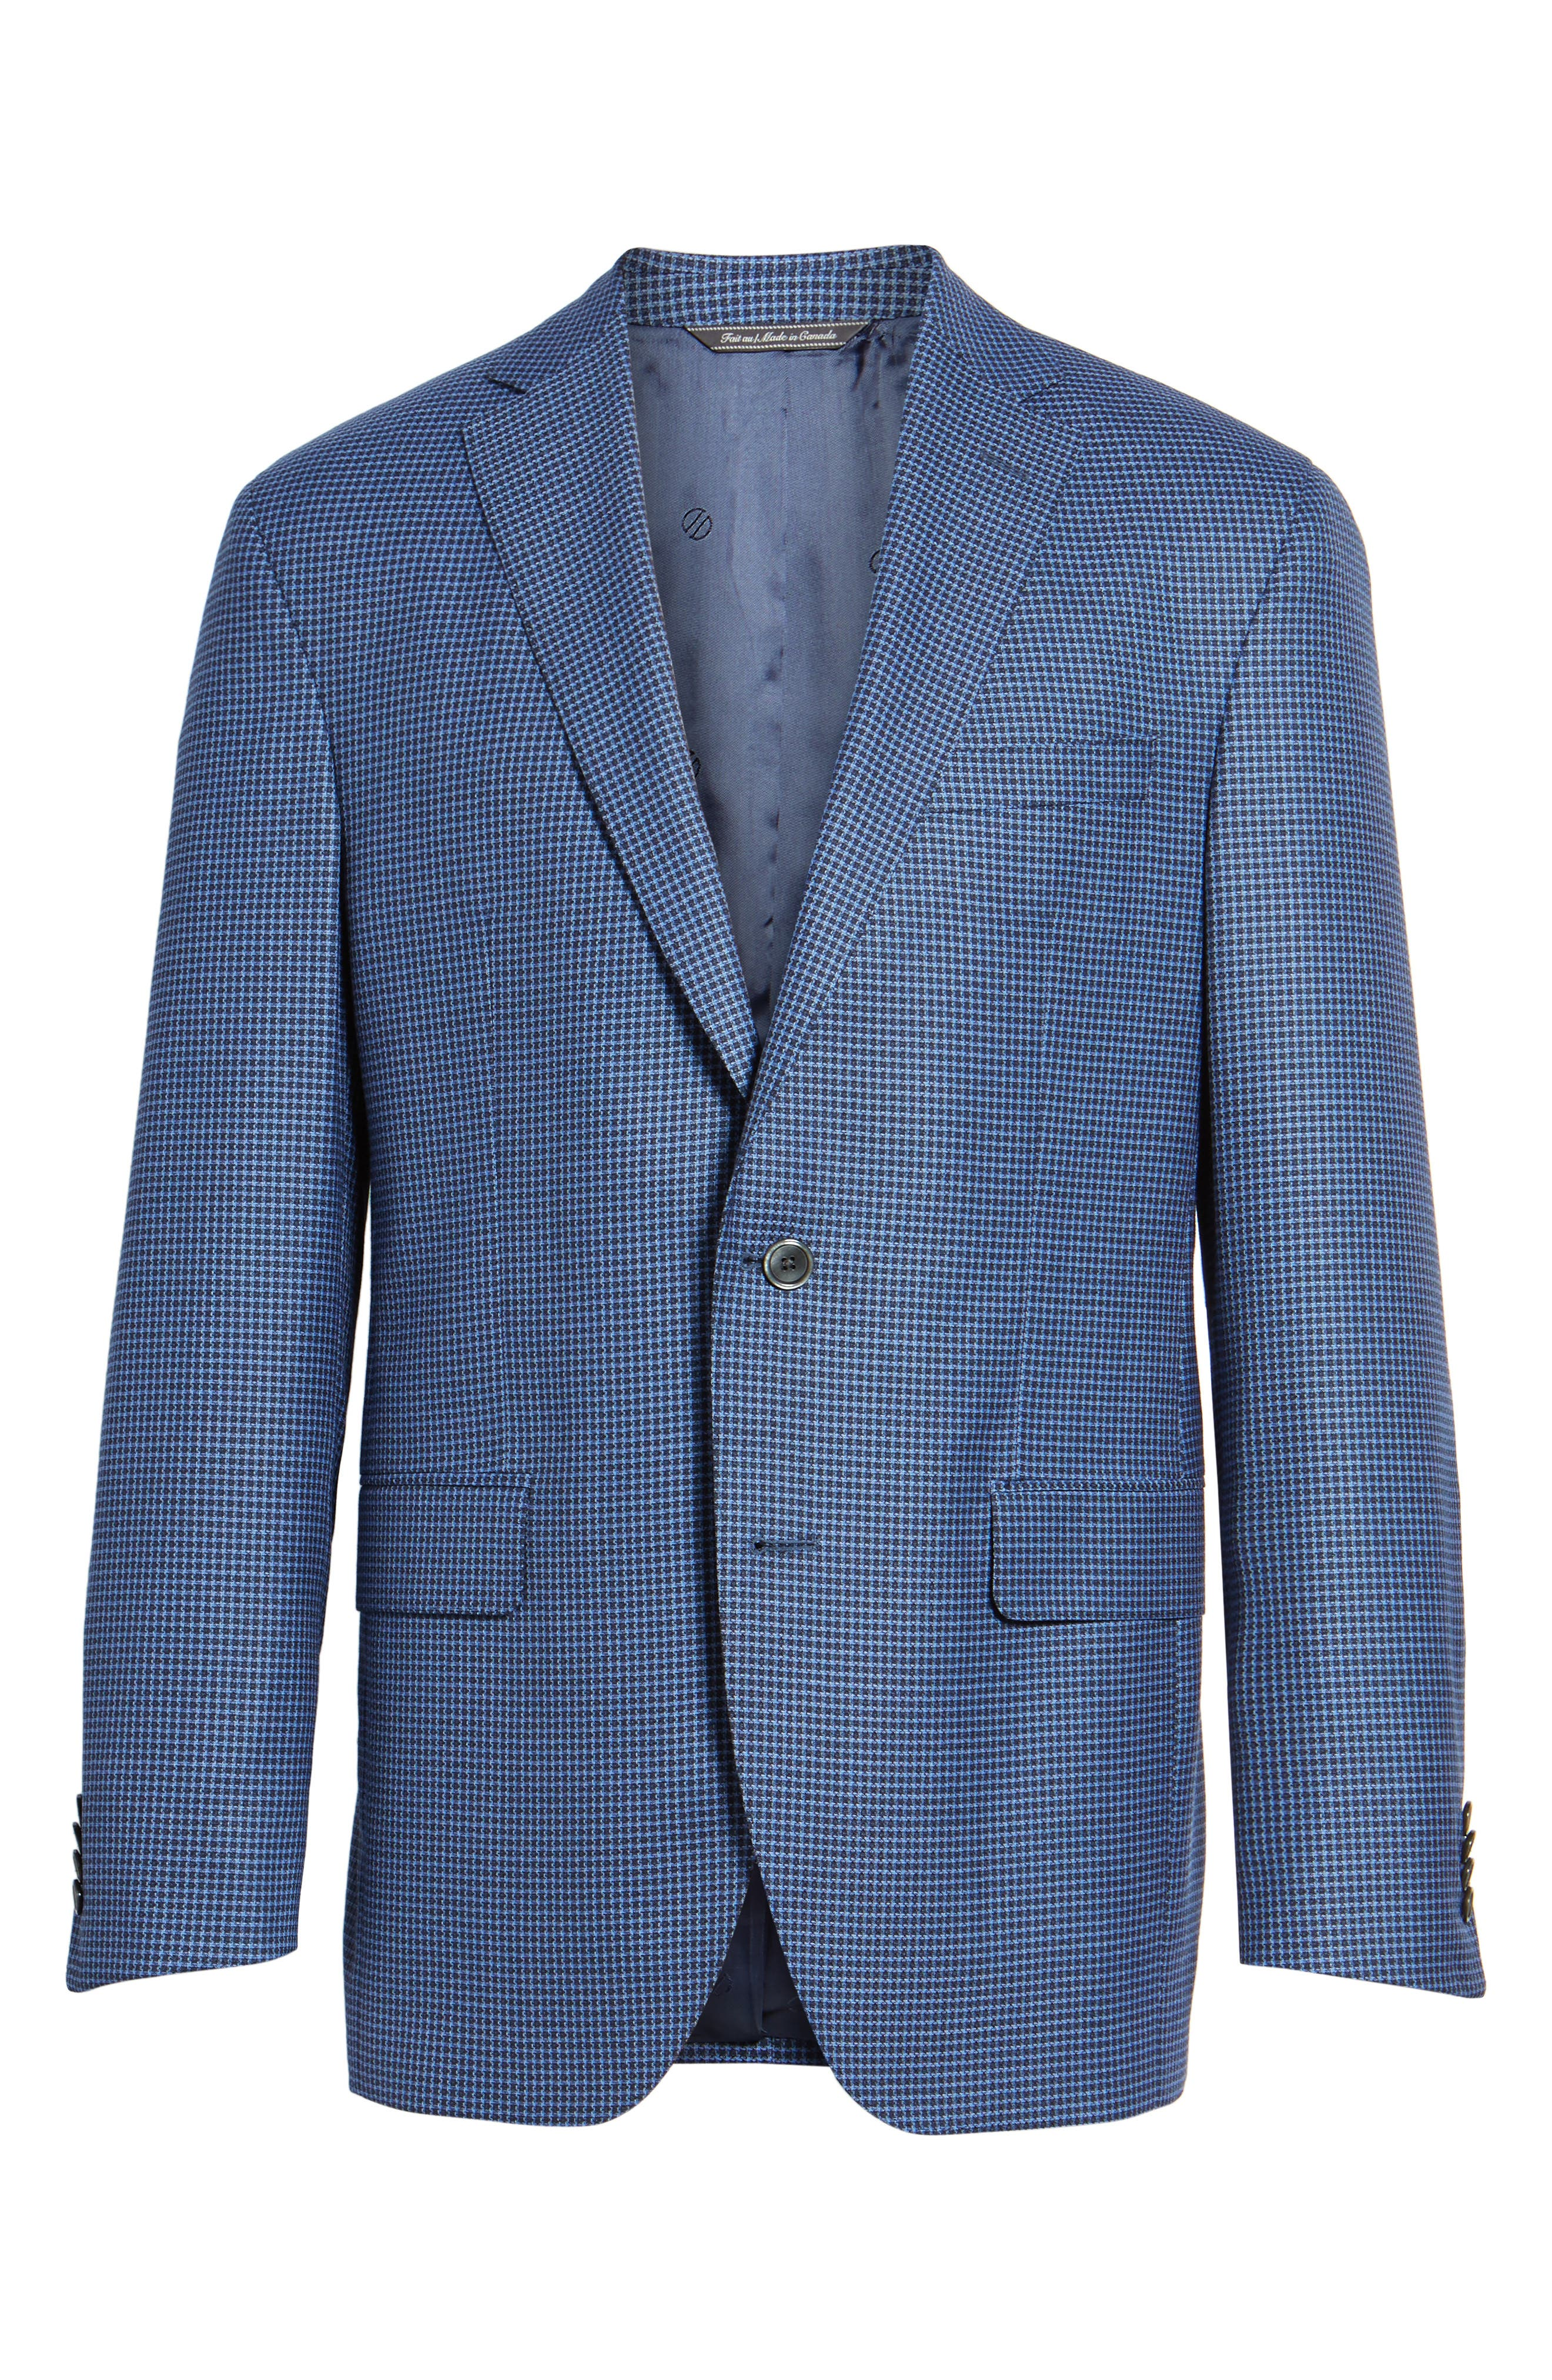 Arnold Classic Fit Check Wool Sport Coat,                             Alternate thumbnail 5, color,